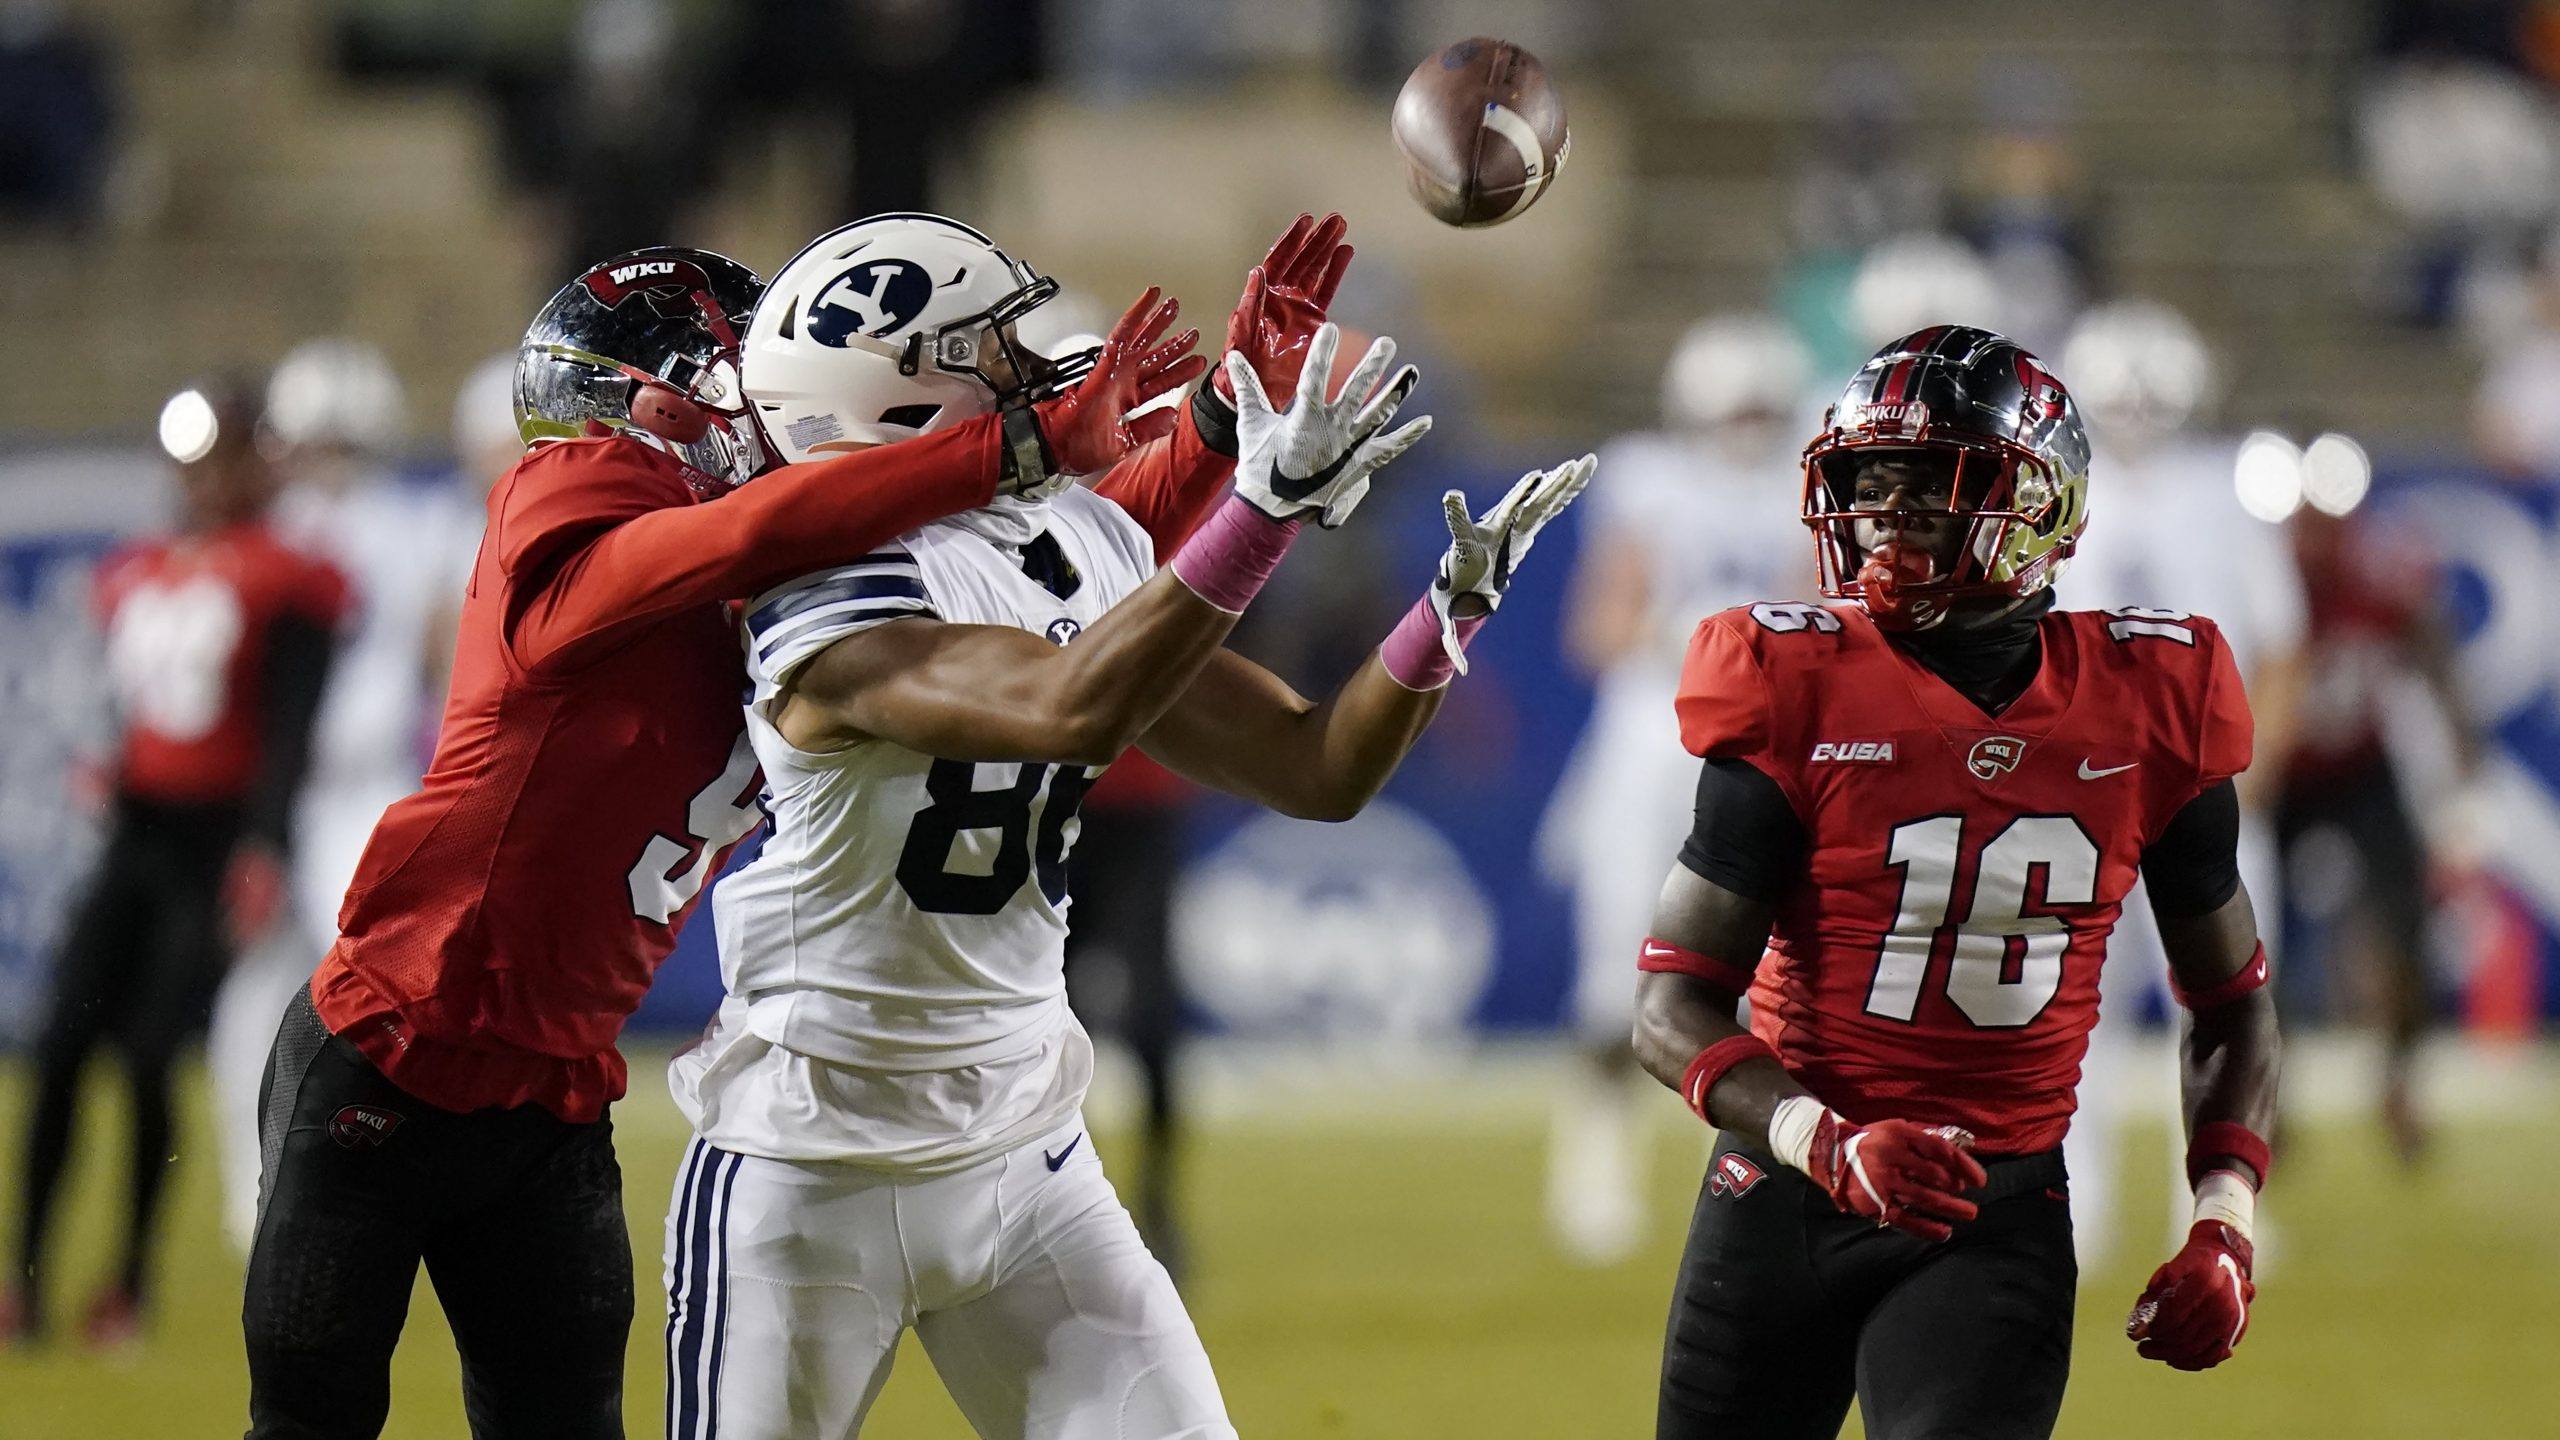 No. 11 BYU routs Western Kentucky 41-10 for 7-0 start